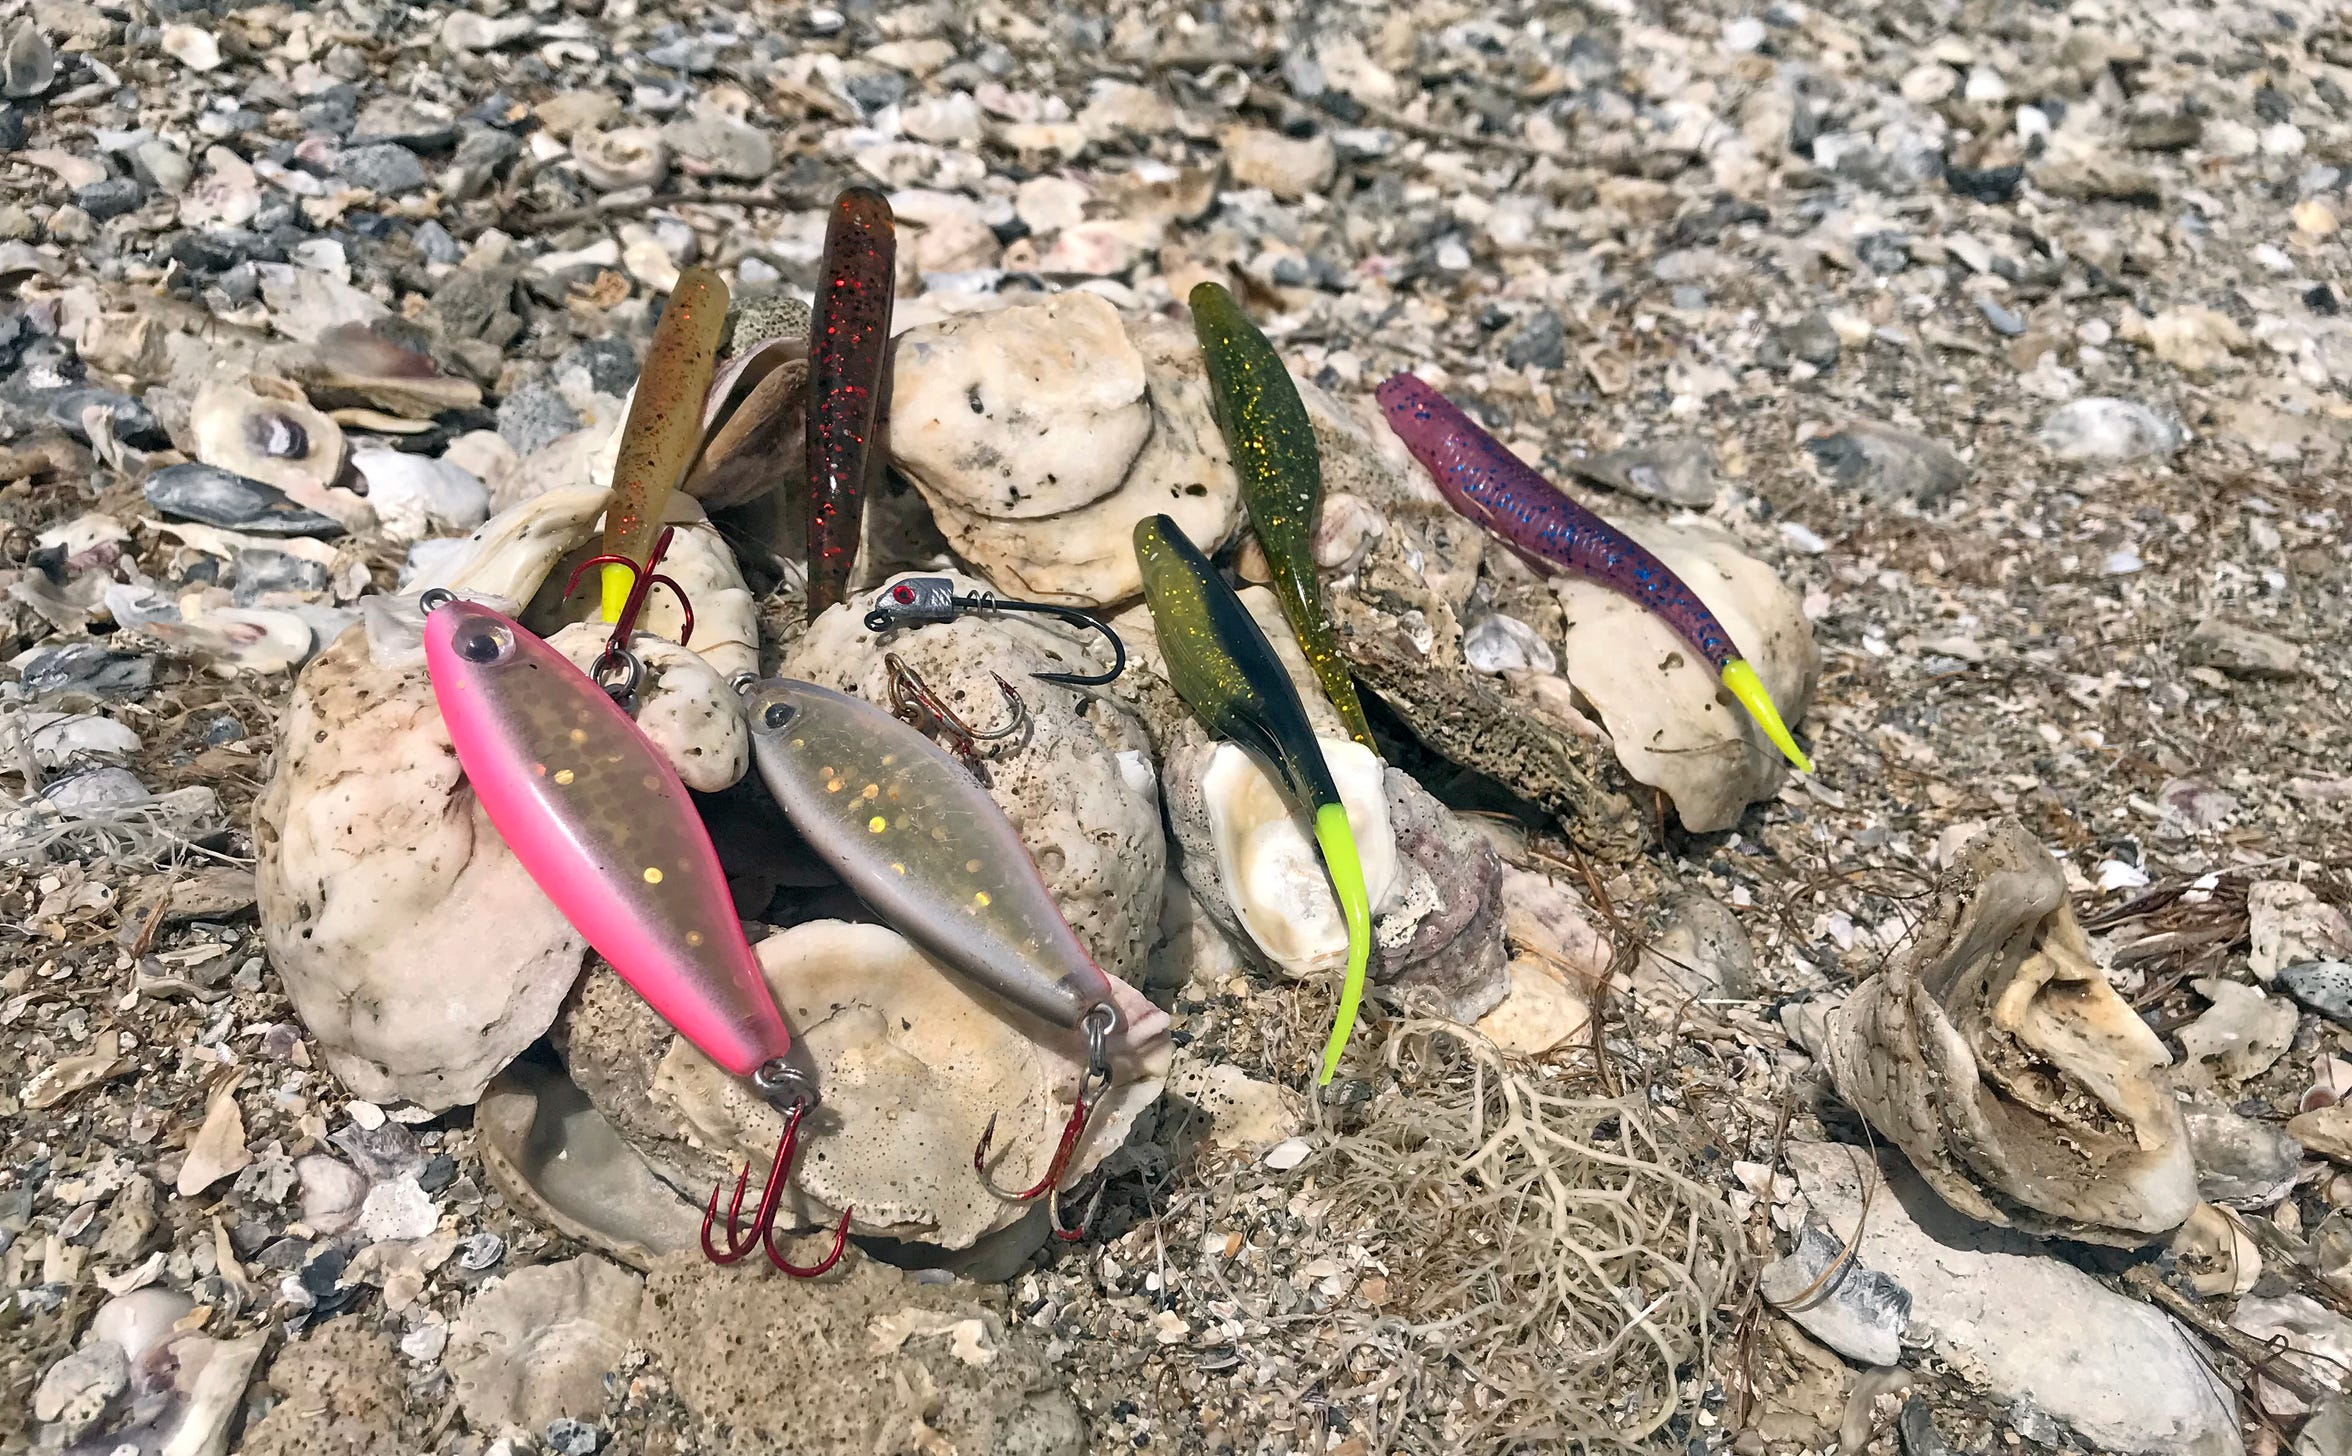 While most winter trout anglers use a variety of Corky-type lures, such as the Paul Brown Original series, Jay Watkins also recommends the Custom Corky, a Texas Double D Lure, some of the MirrOLure suspending and slow-sinkers, plus these soft plastic jerkbaits on lightweight jigheads.